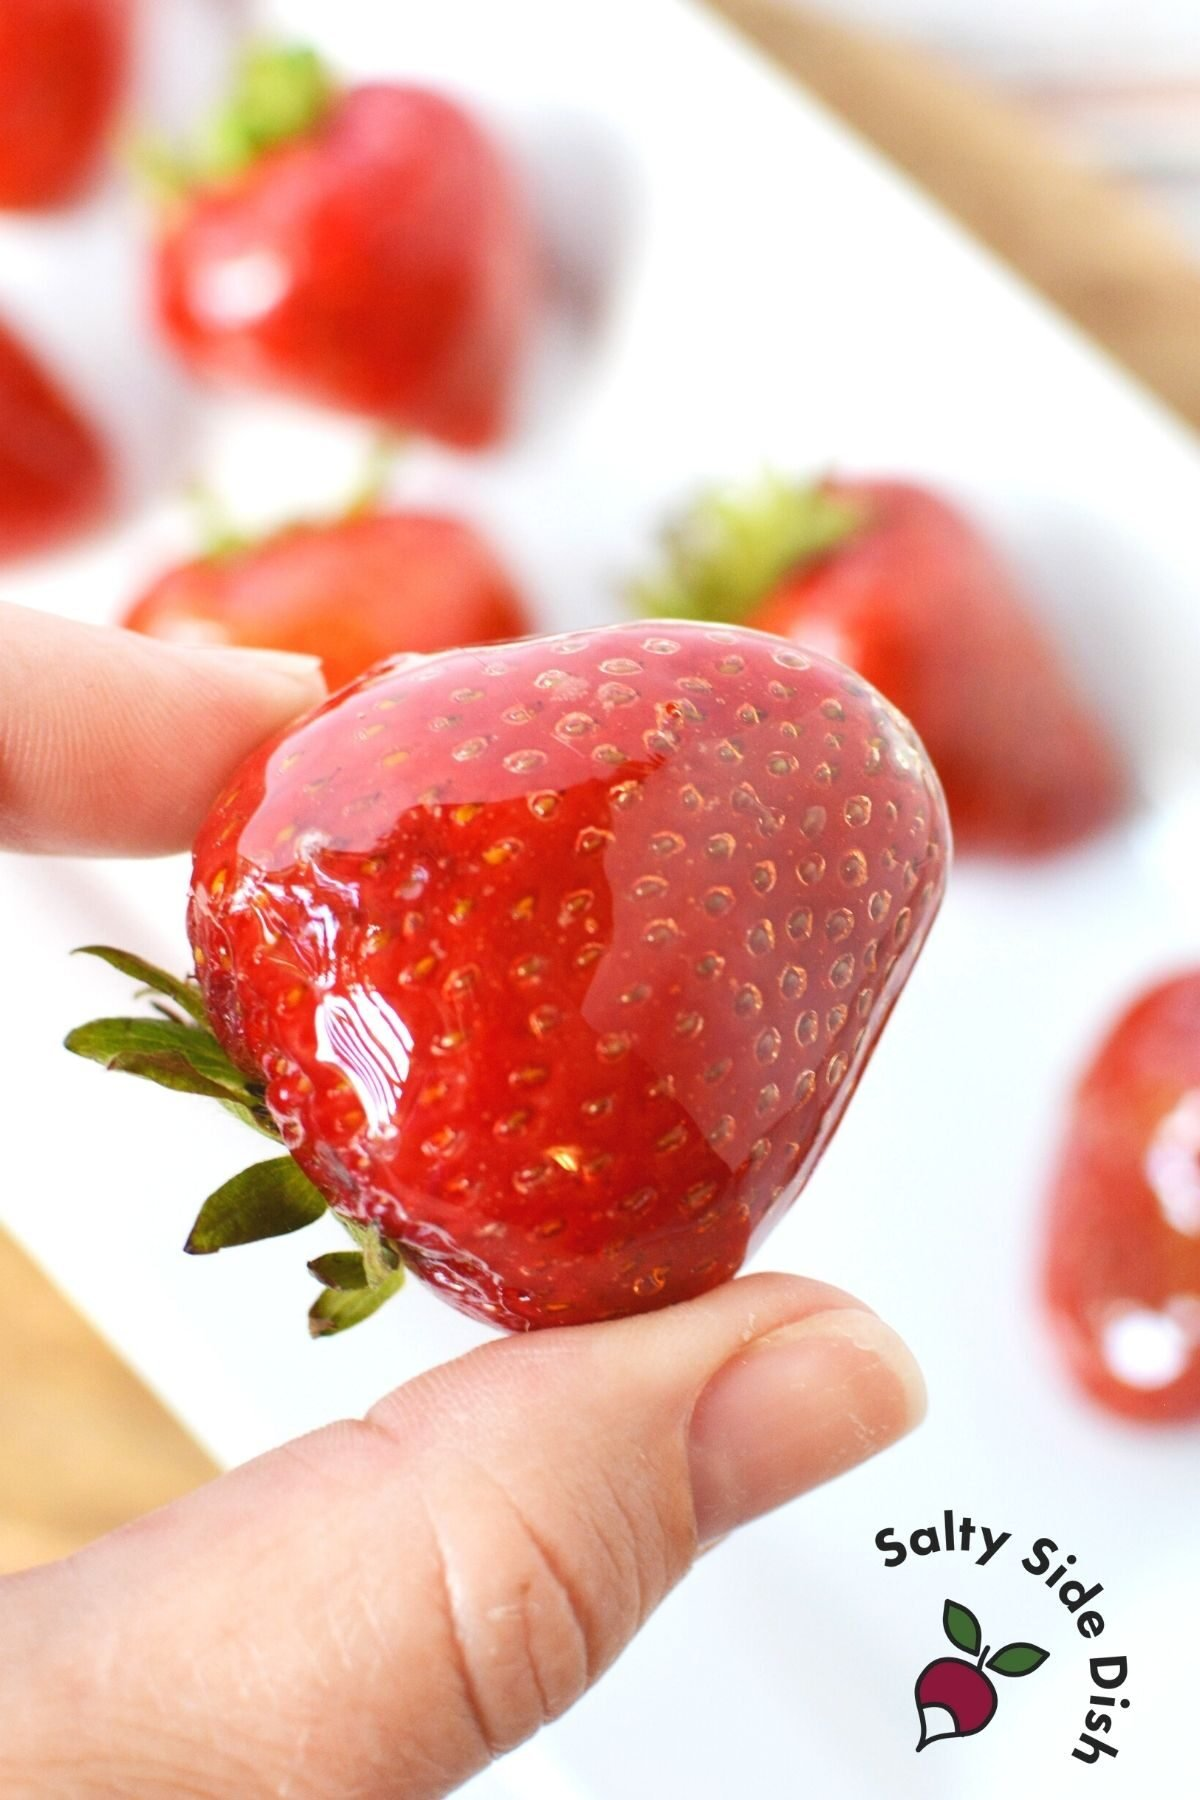 holding a tangulu candied strawberry with a finger and thumb.